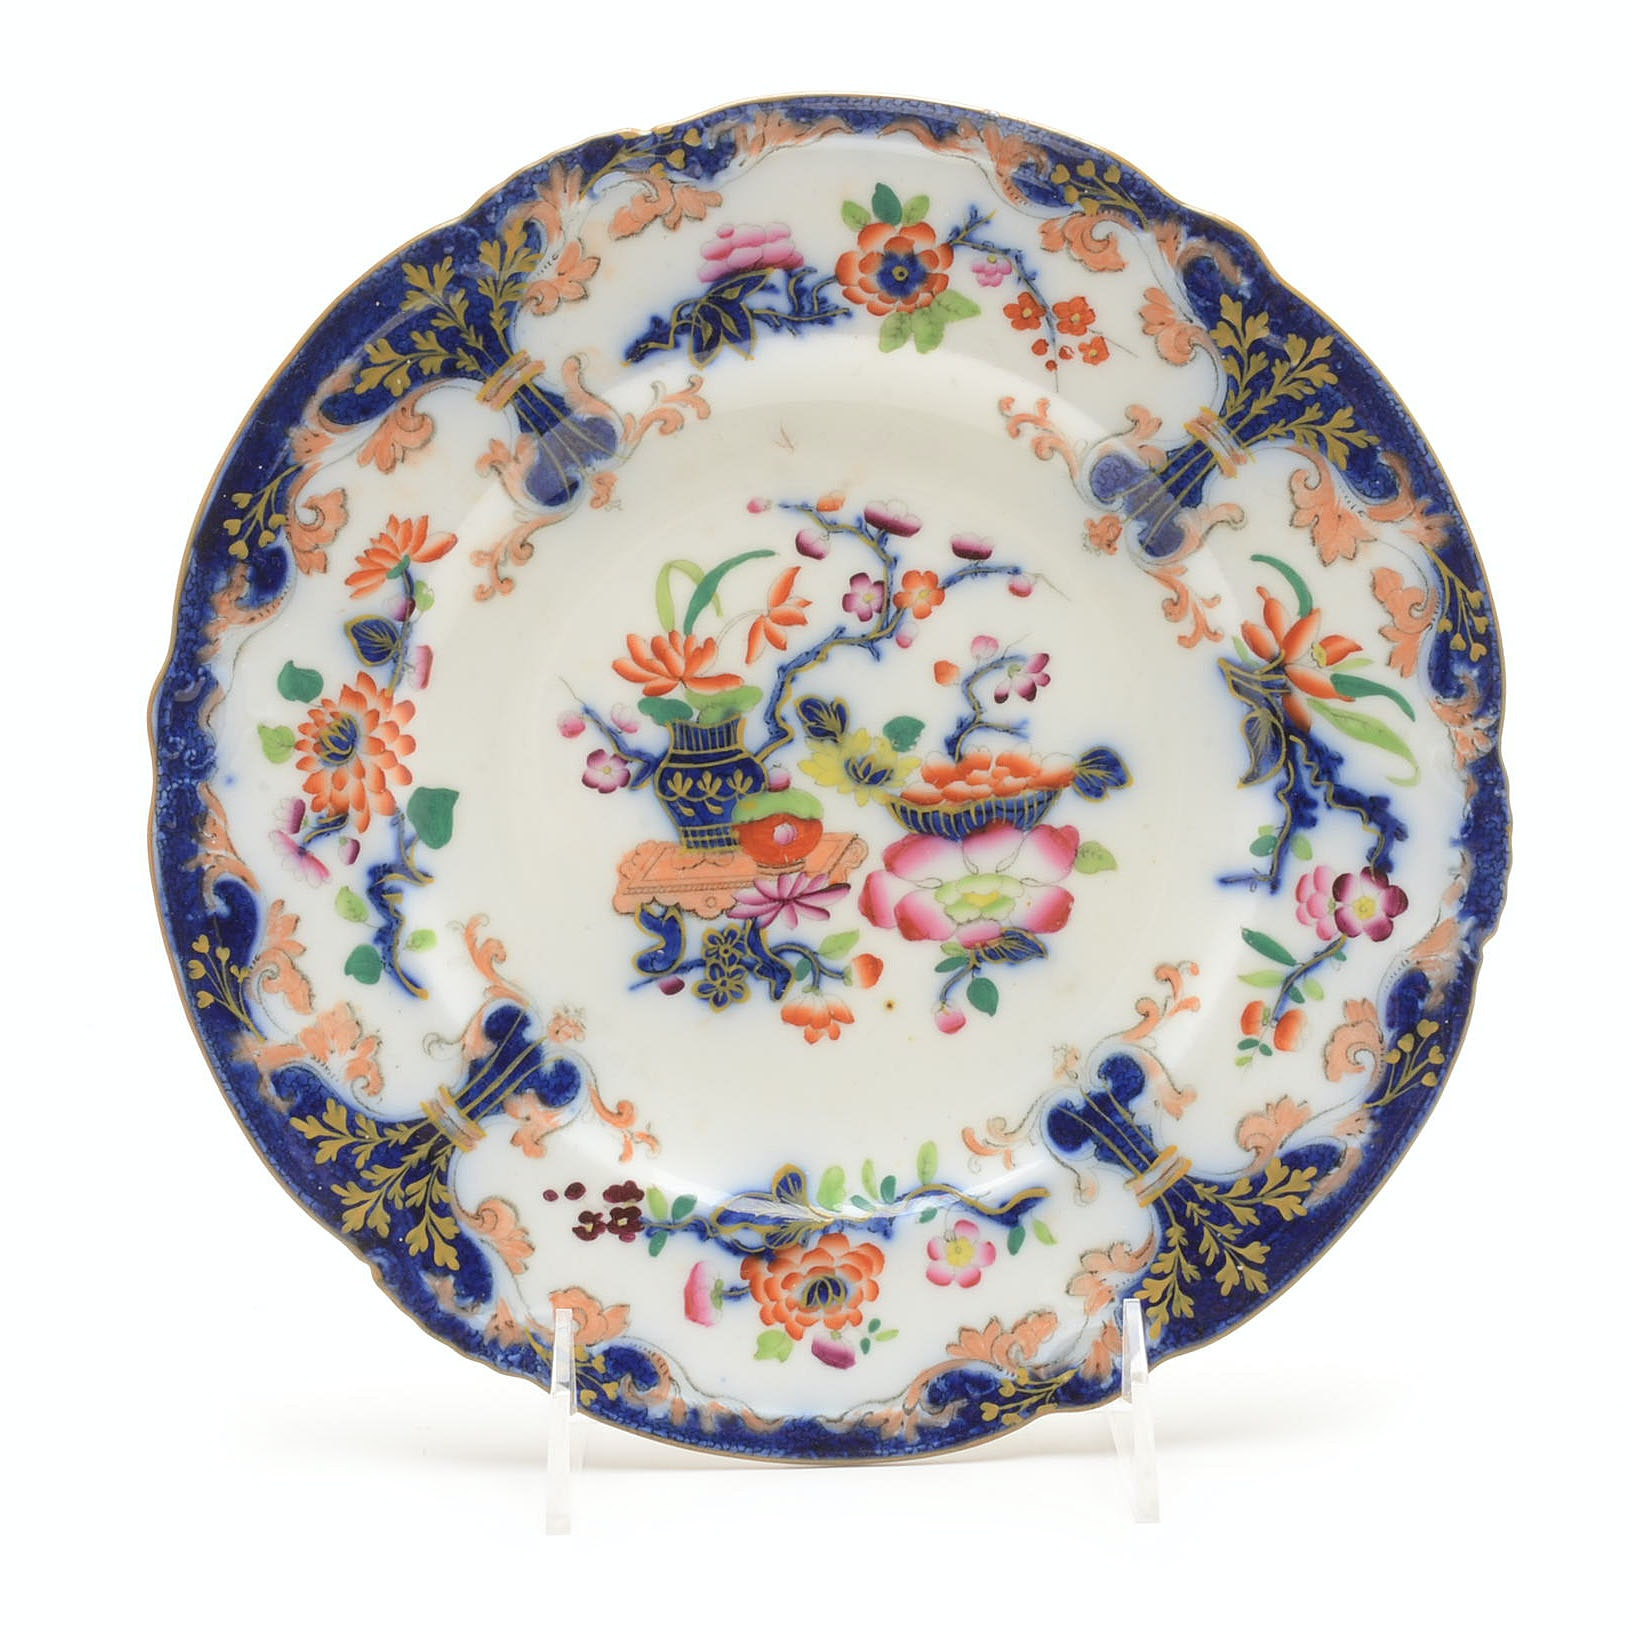 Antique Minton and Hollins Plate ...  sc 1 st  EBTH.com & Antique Minton and Hollins Plate : EBTH